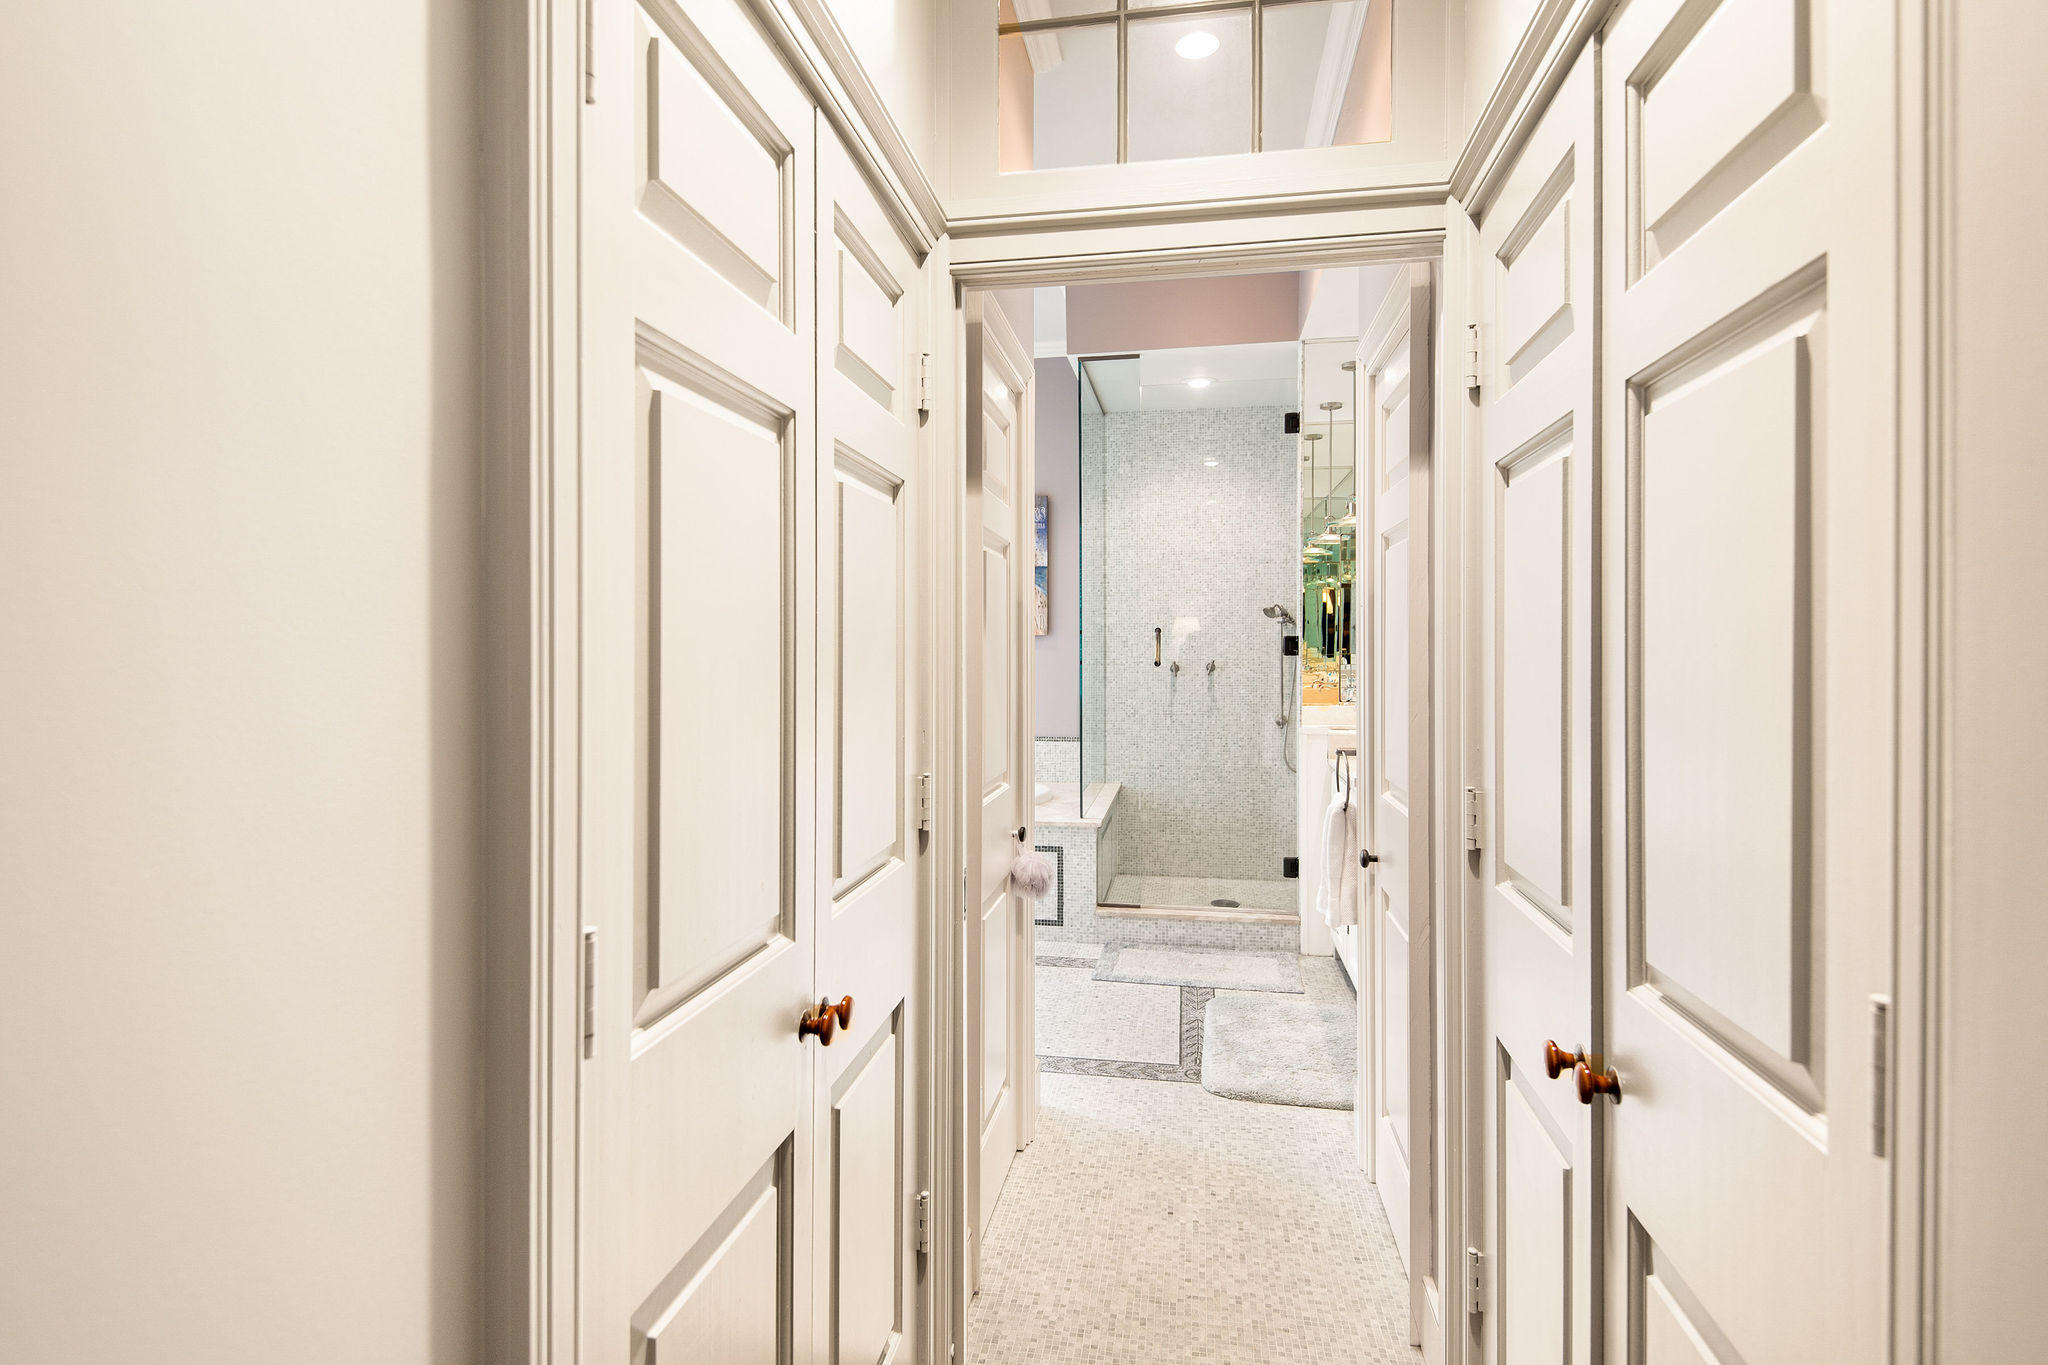 South of Broad Homes For Sale - 54 Tradd, Charleston, SC - 53